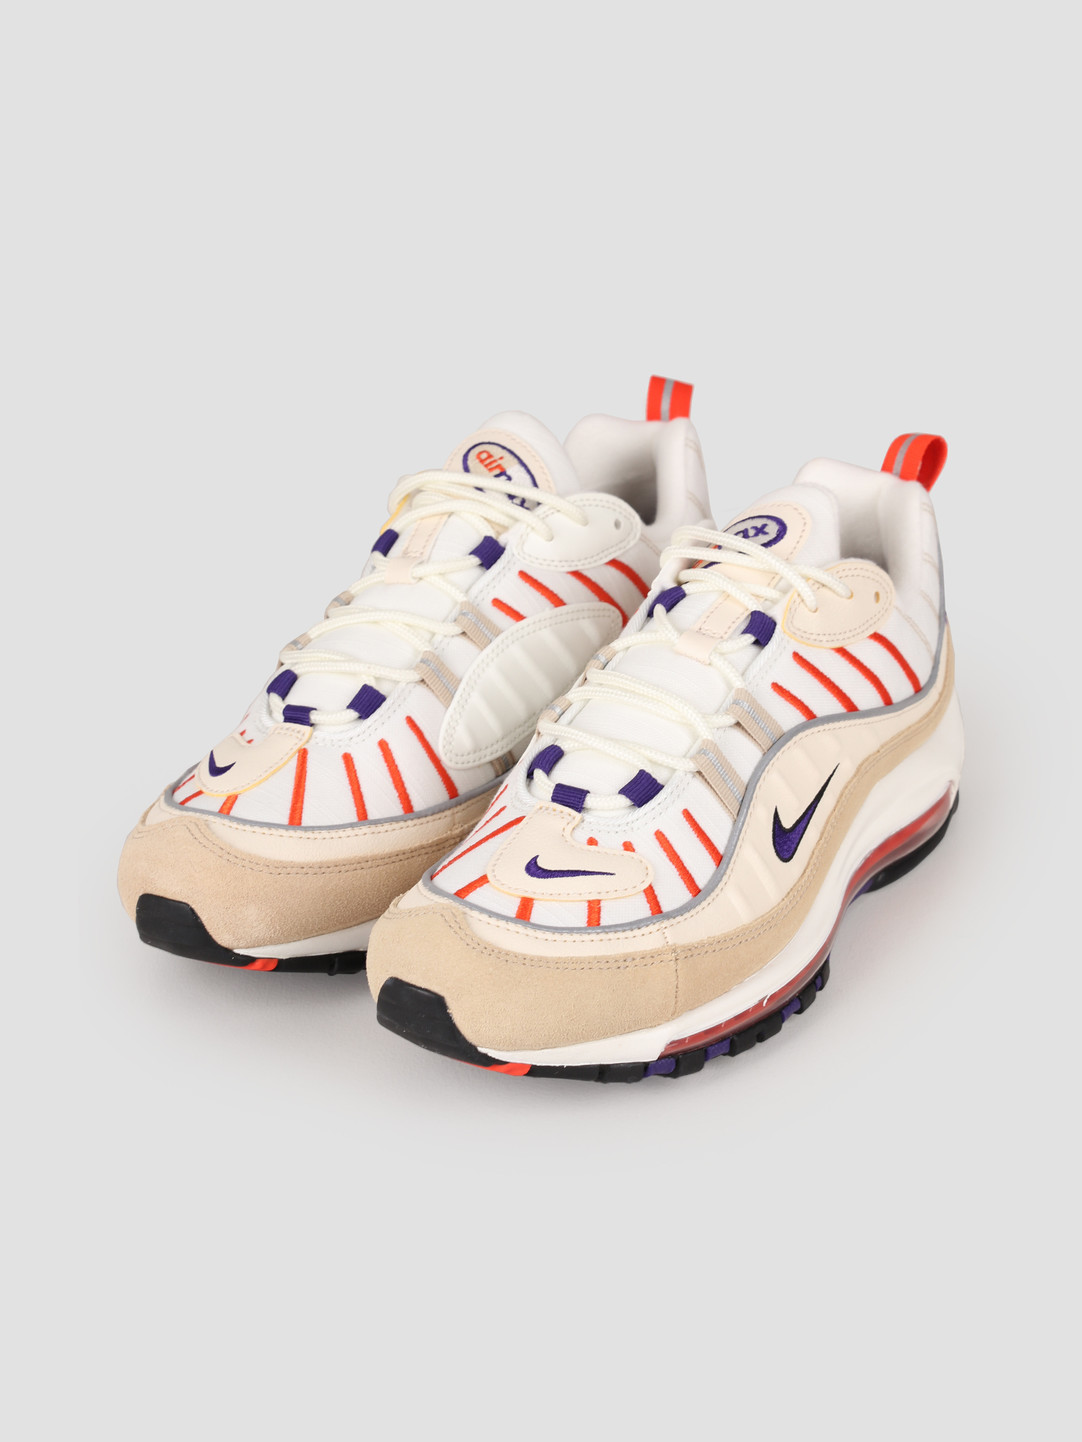 check out d6d24 ab400 Nike Air Max 98 Sail Court Purple Light Cream Desert Ore 640744-108